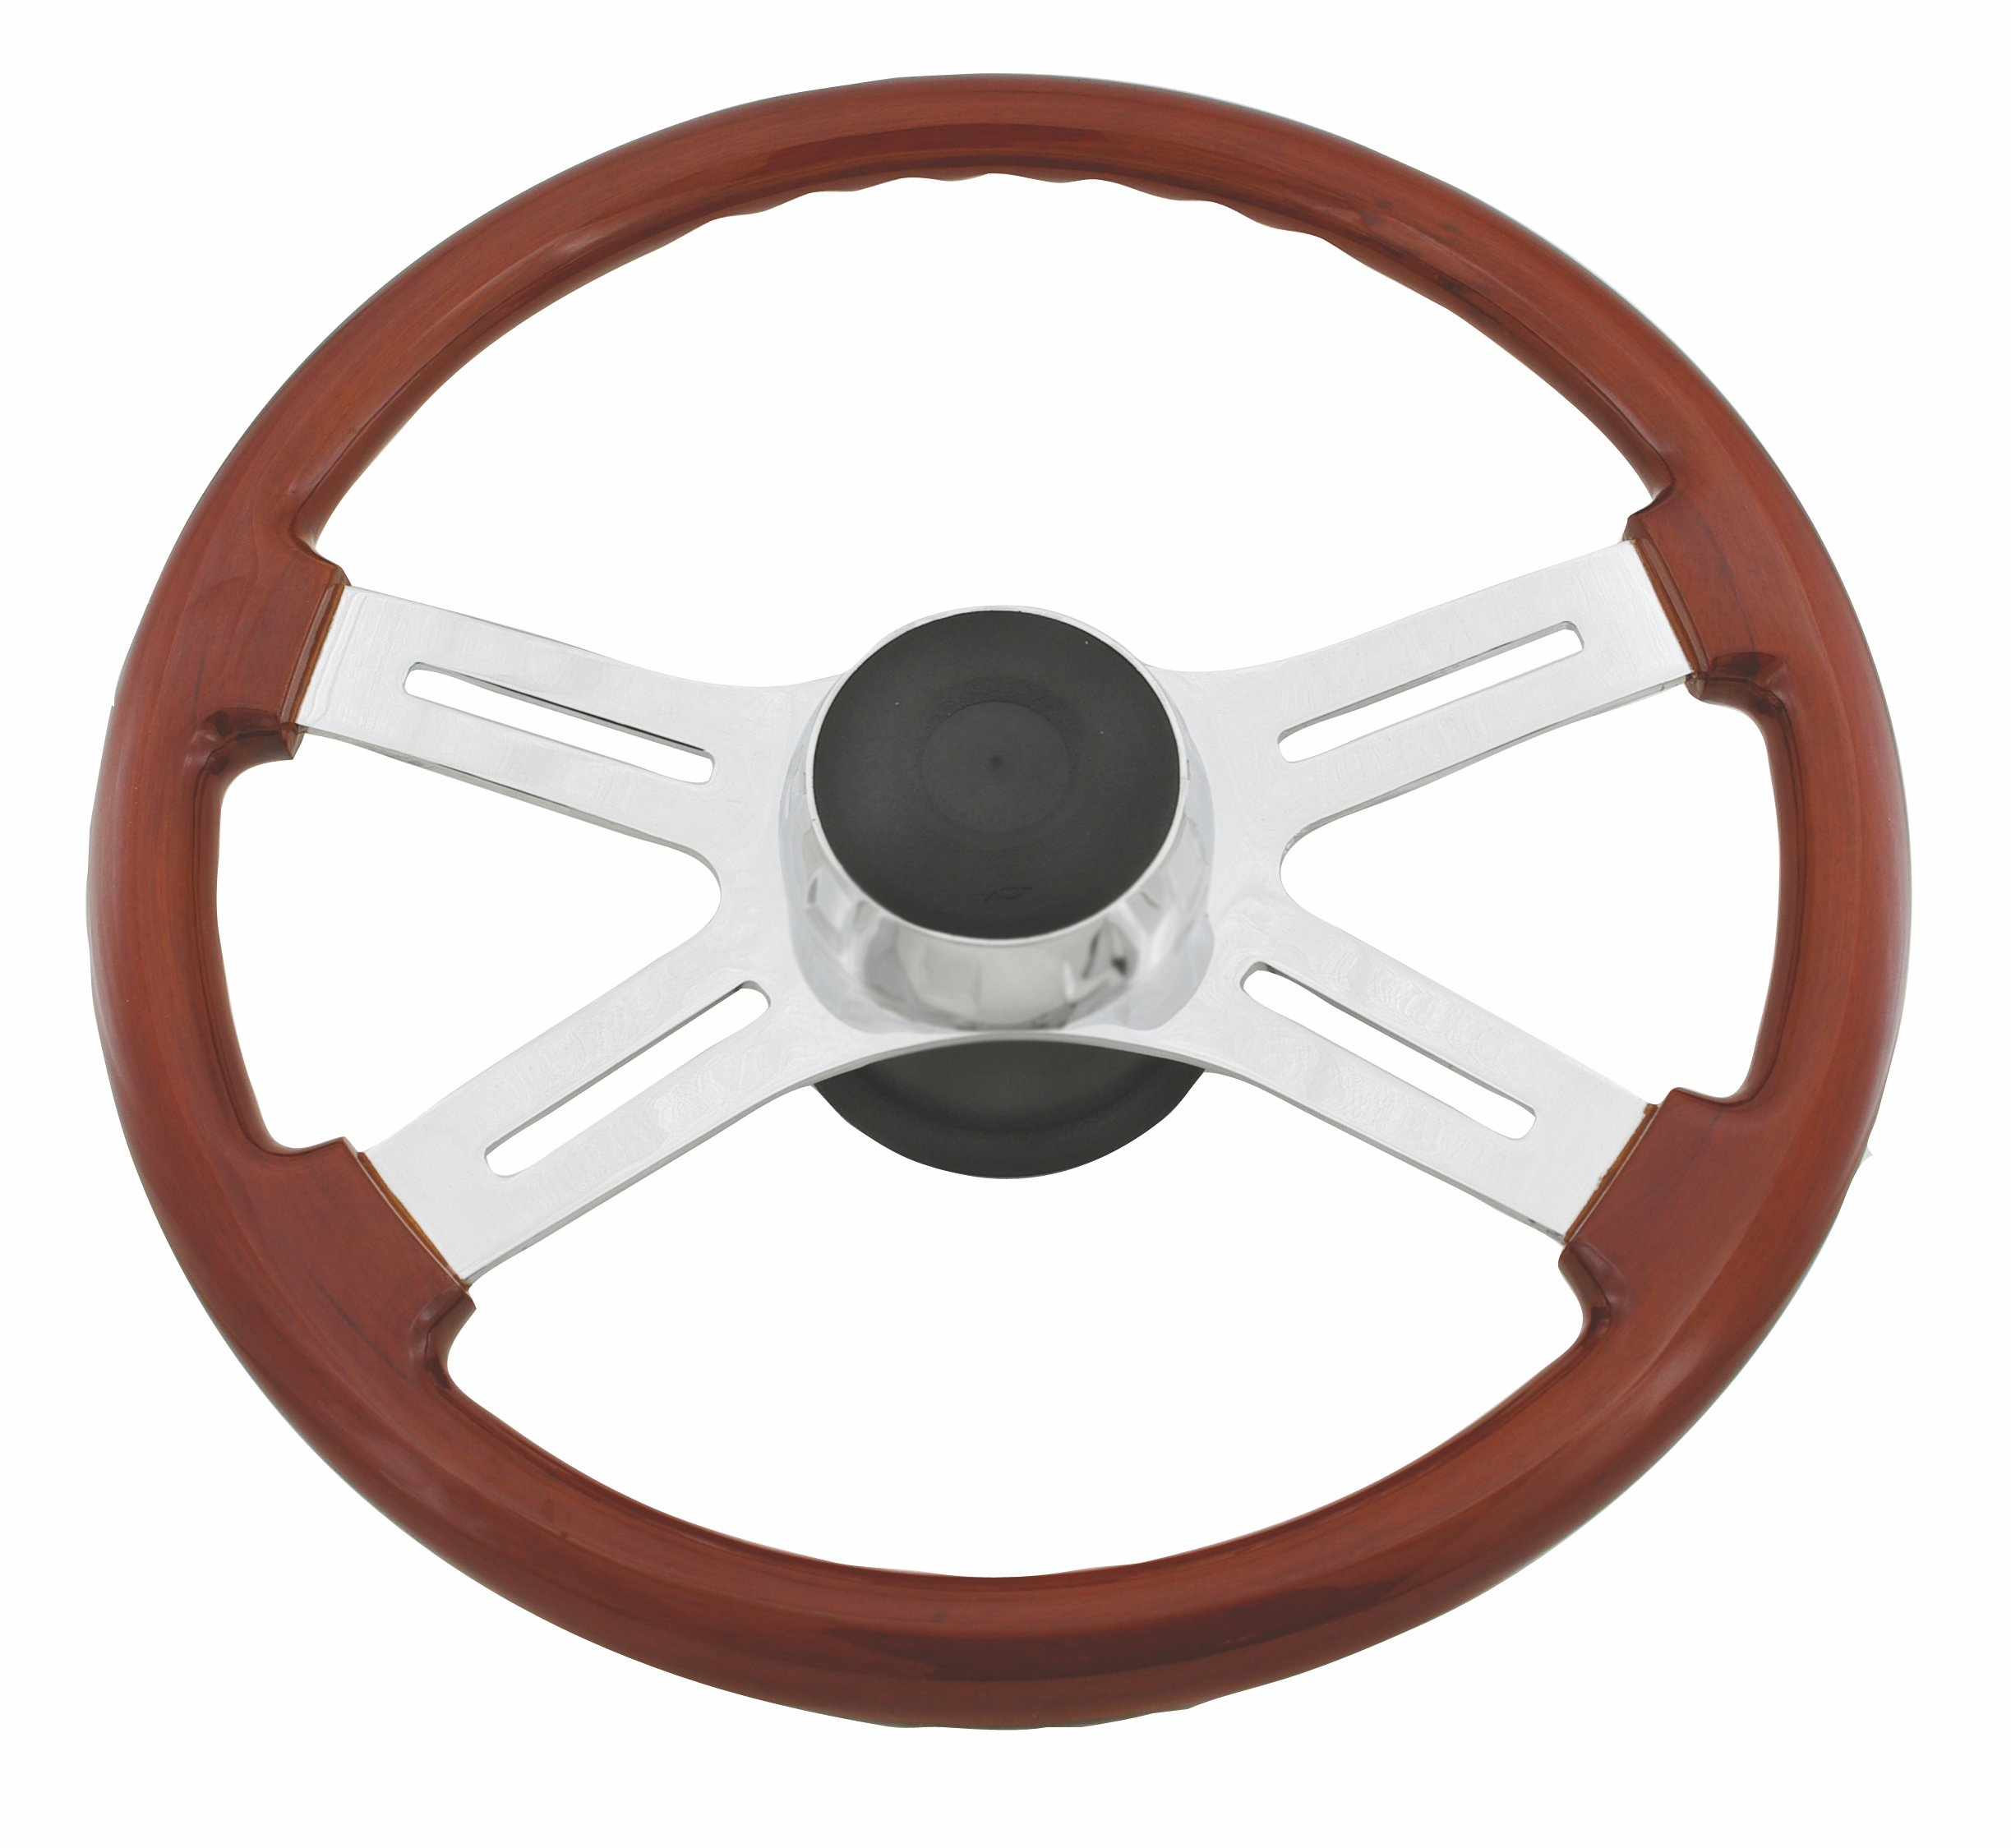 Woody's WP-SWPB8693 Rosewood Chrome Truck Steering Wheel (Beautiful African Hardwood) by Woody's